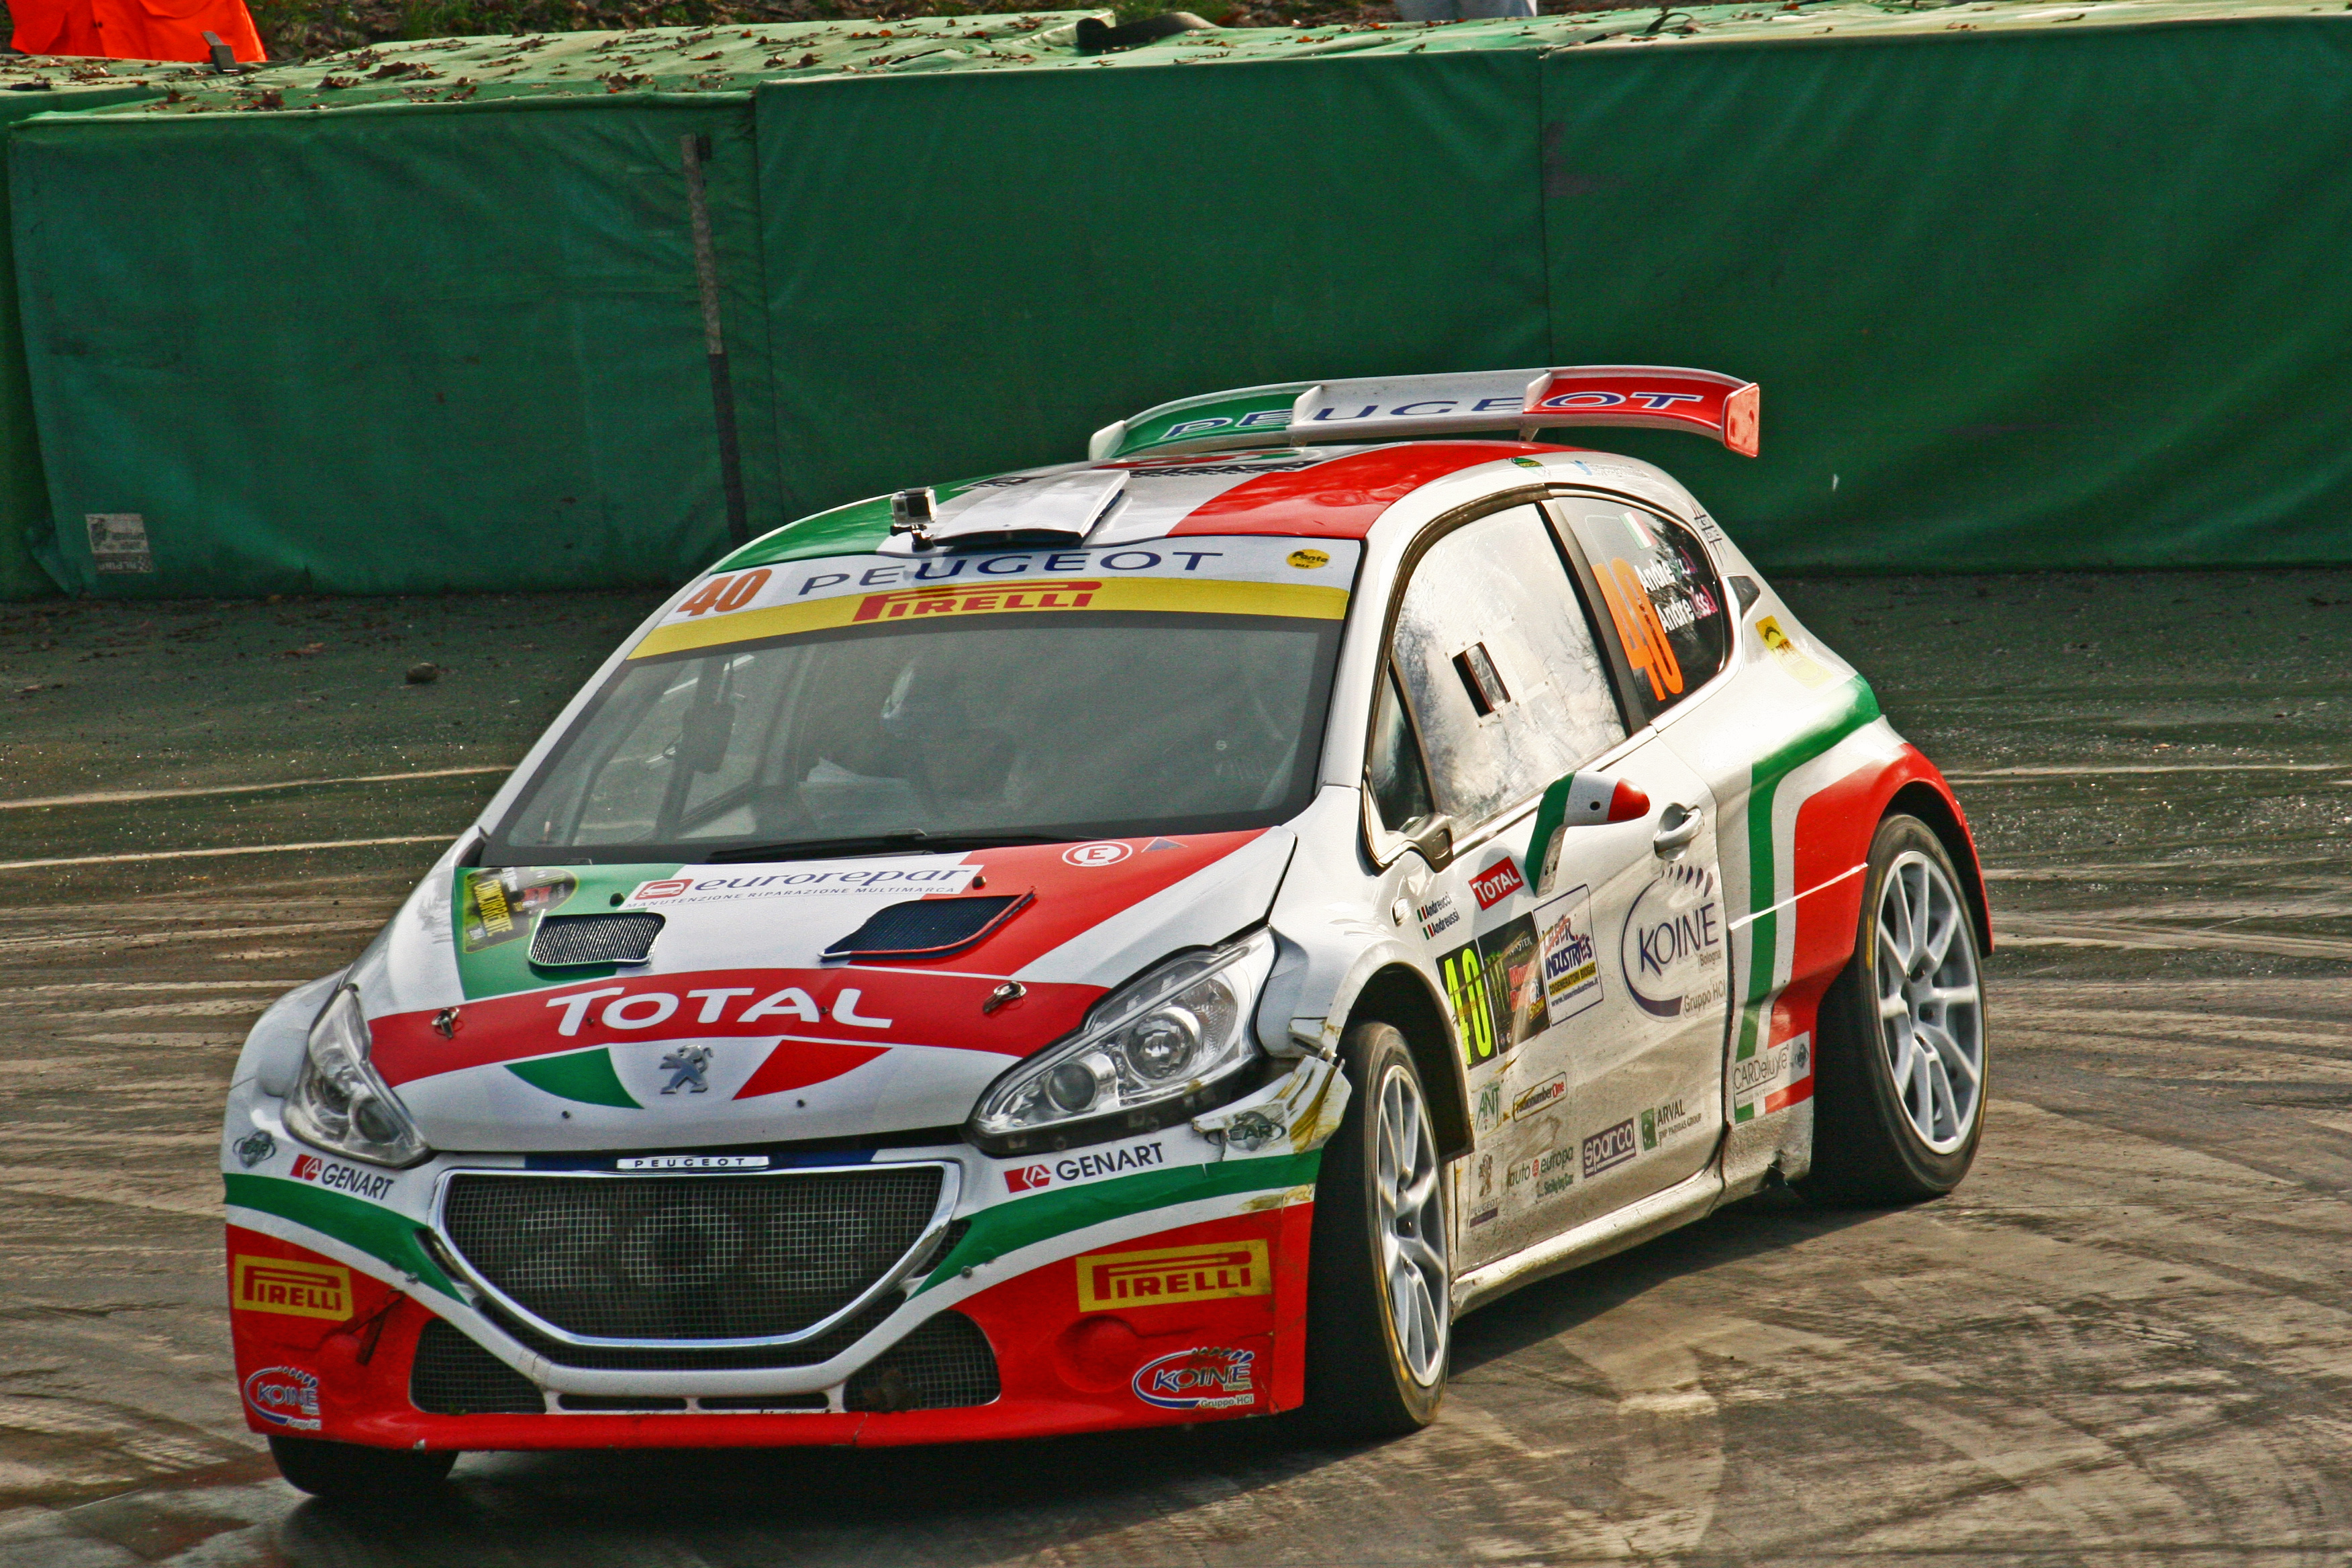 Andreucci Paolo - Andreussi Anna // Peugeot 208 T16